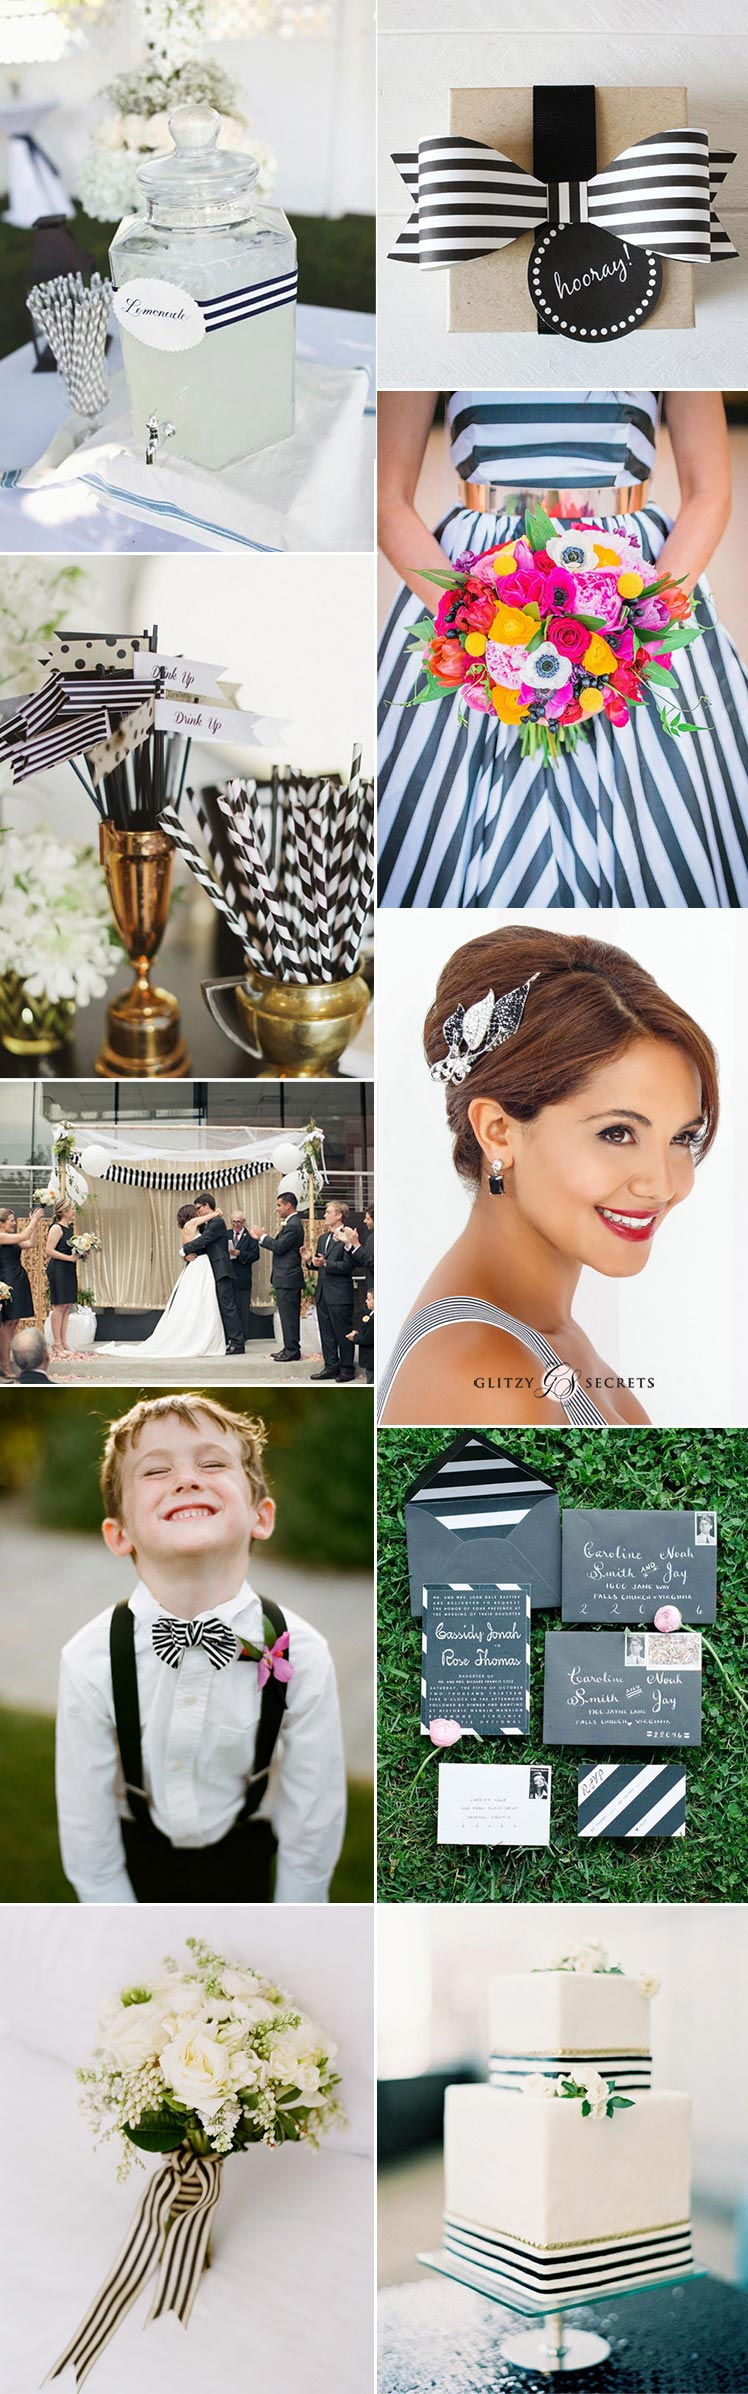 Ideas for a striped wedding theme